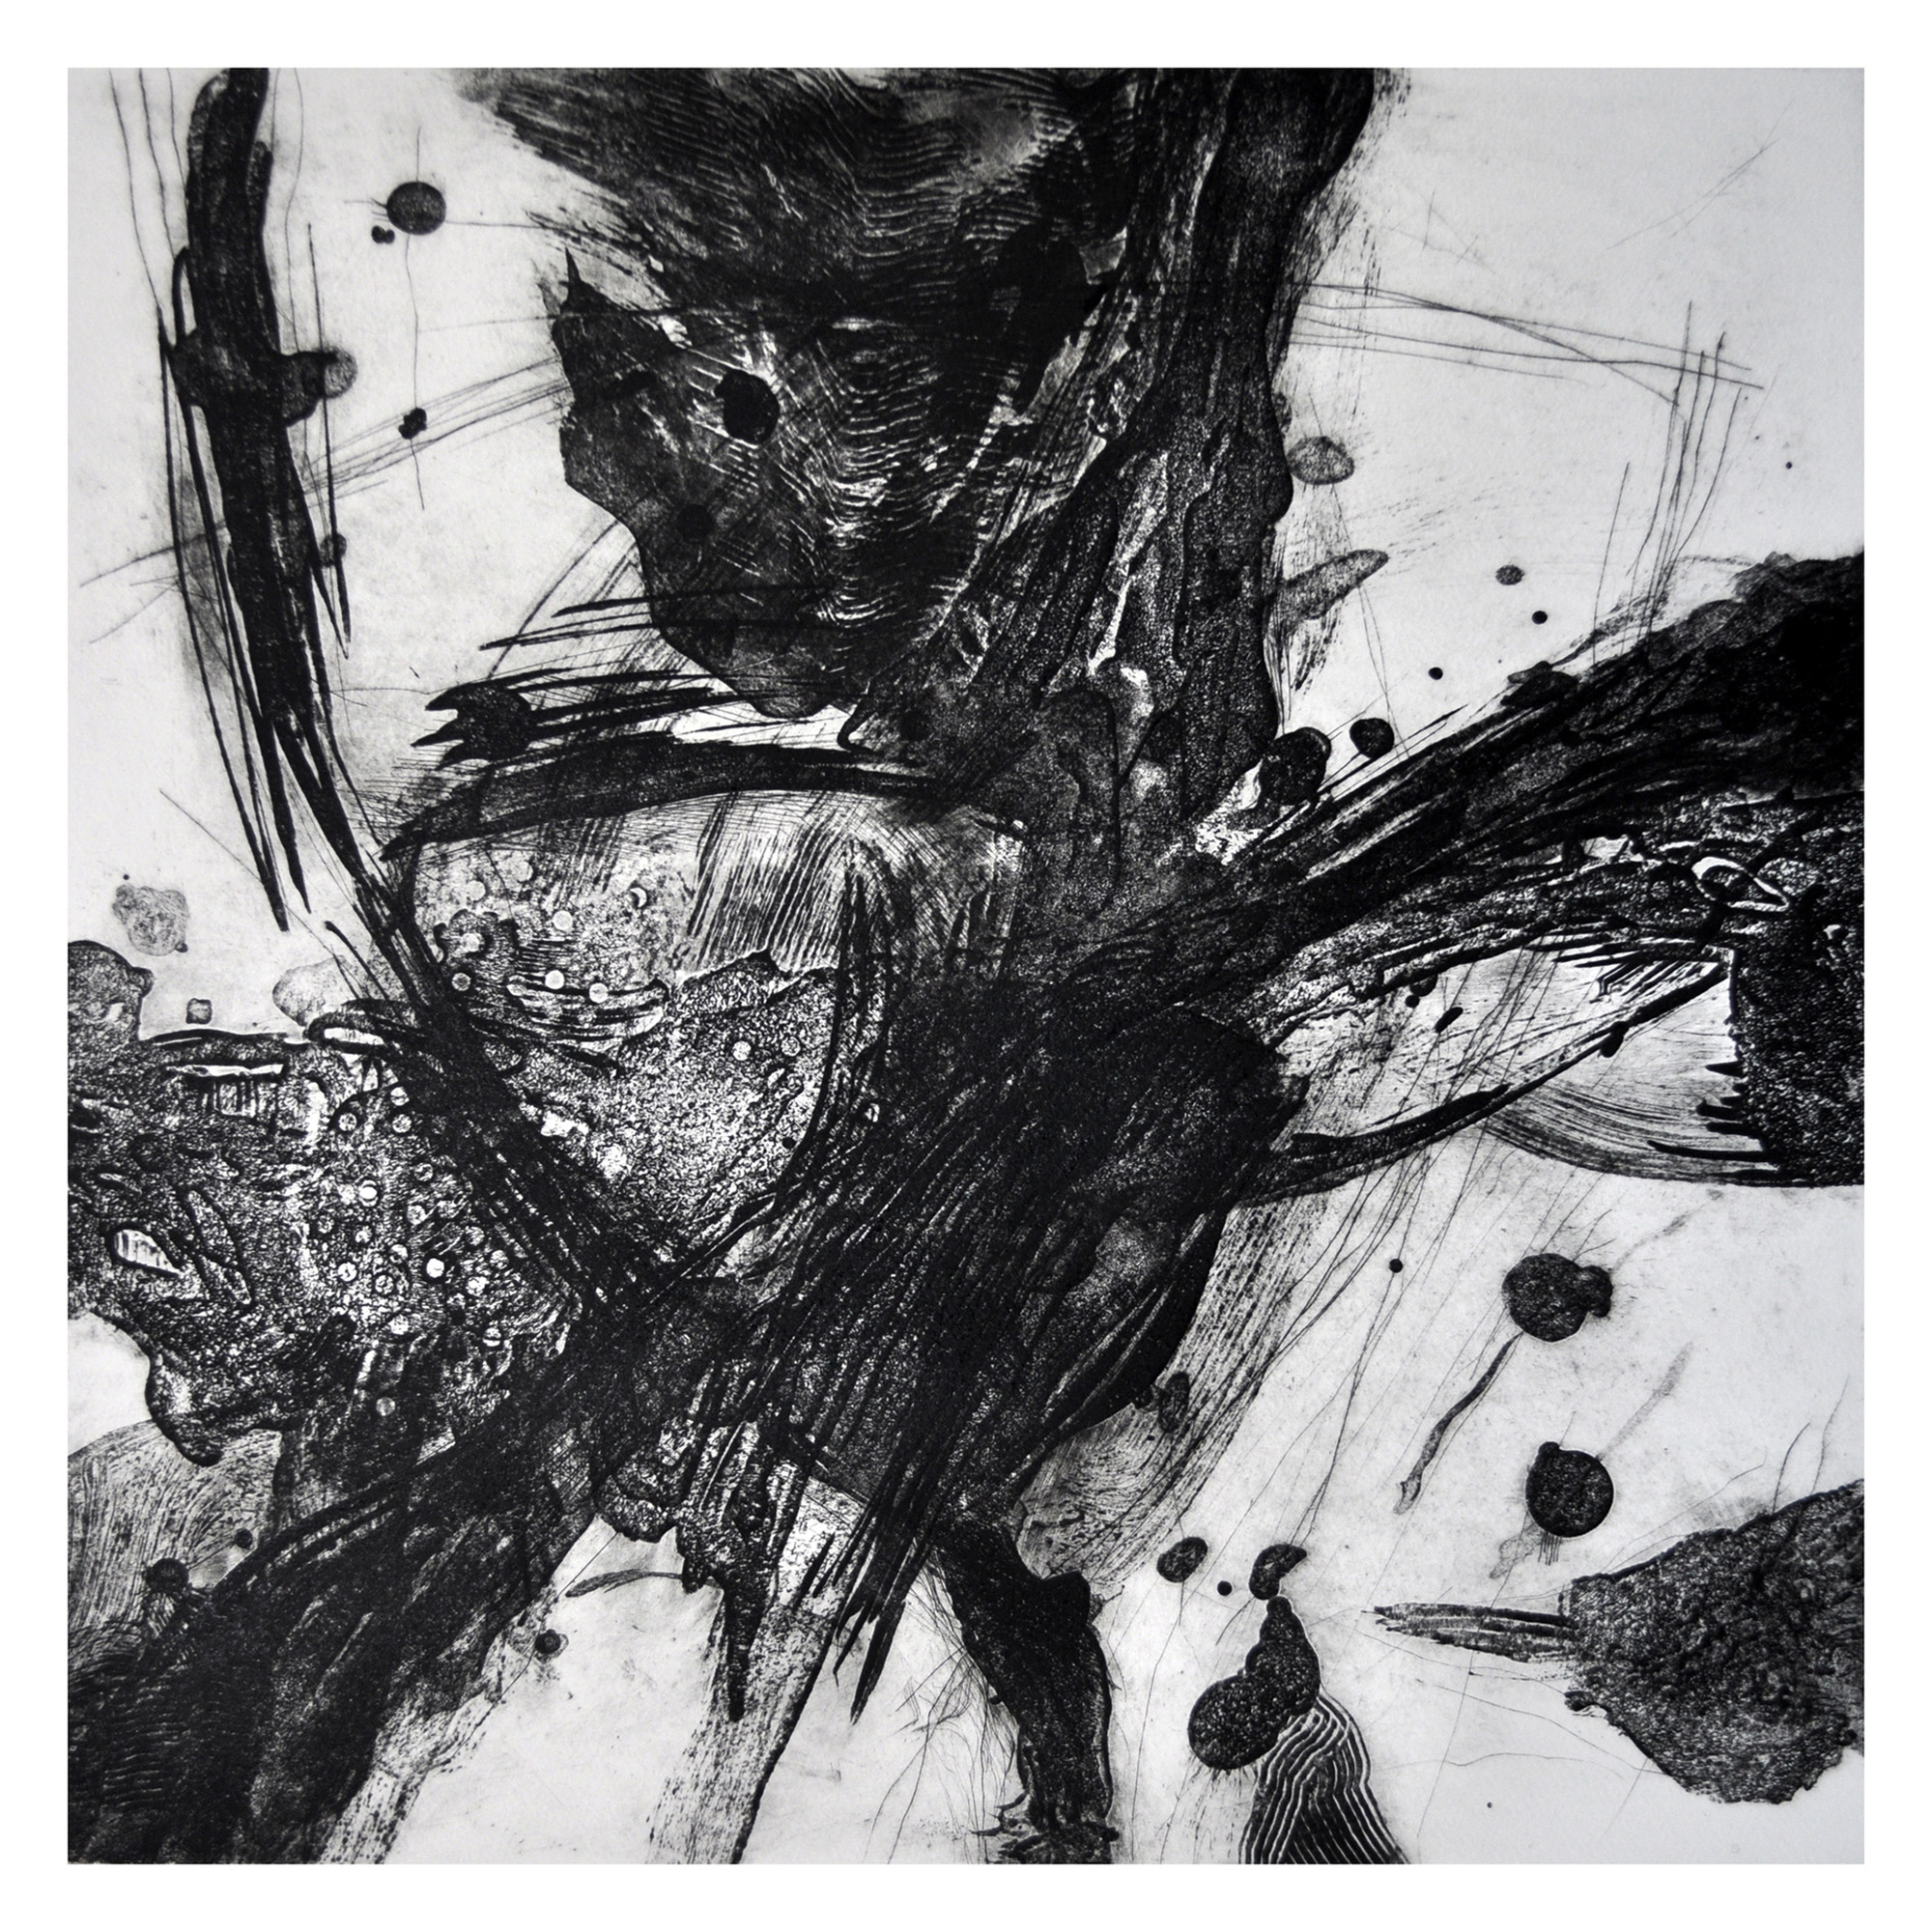 Abdelsalam Salem   Accumulation of time 5#  Intaglio 19.75 x 19.75 inches, APS 247G